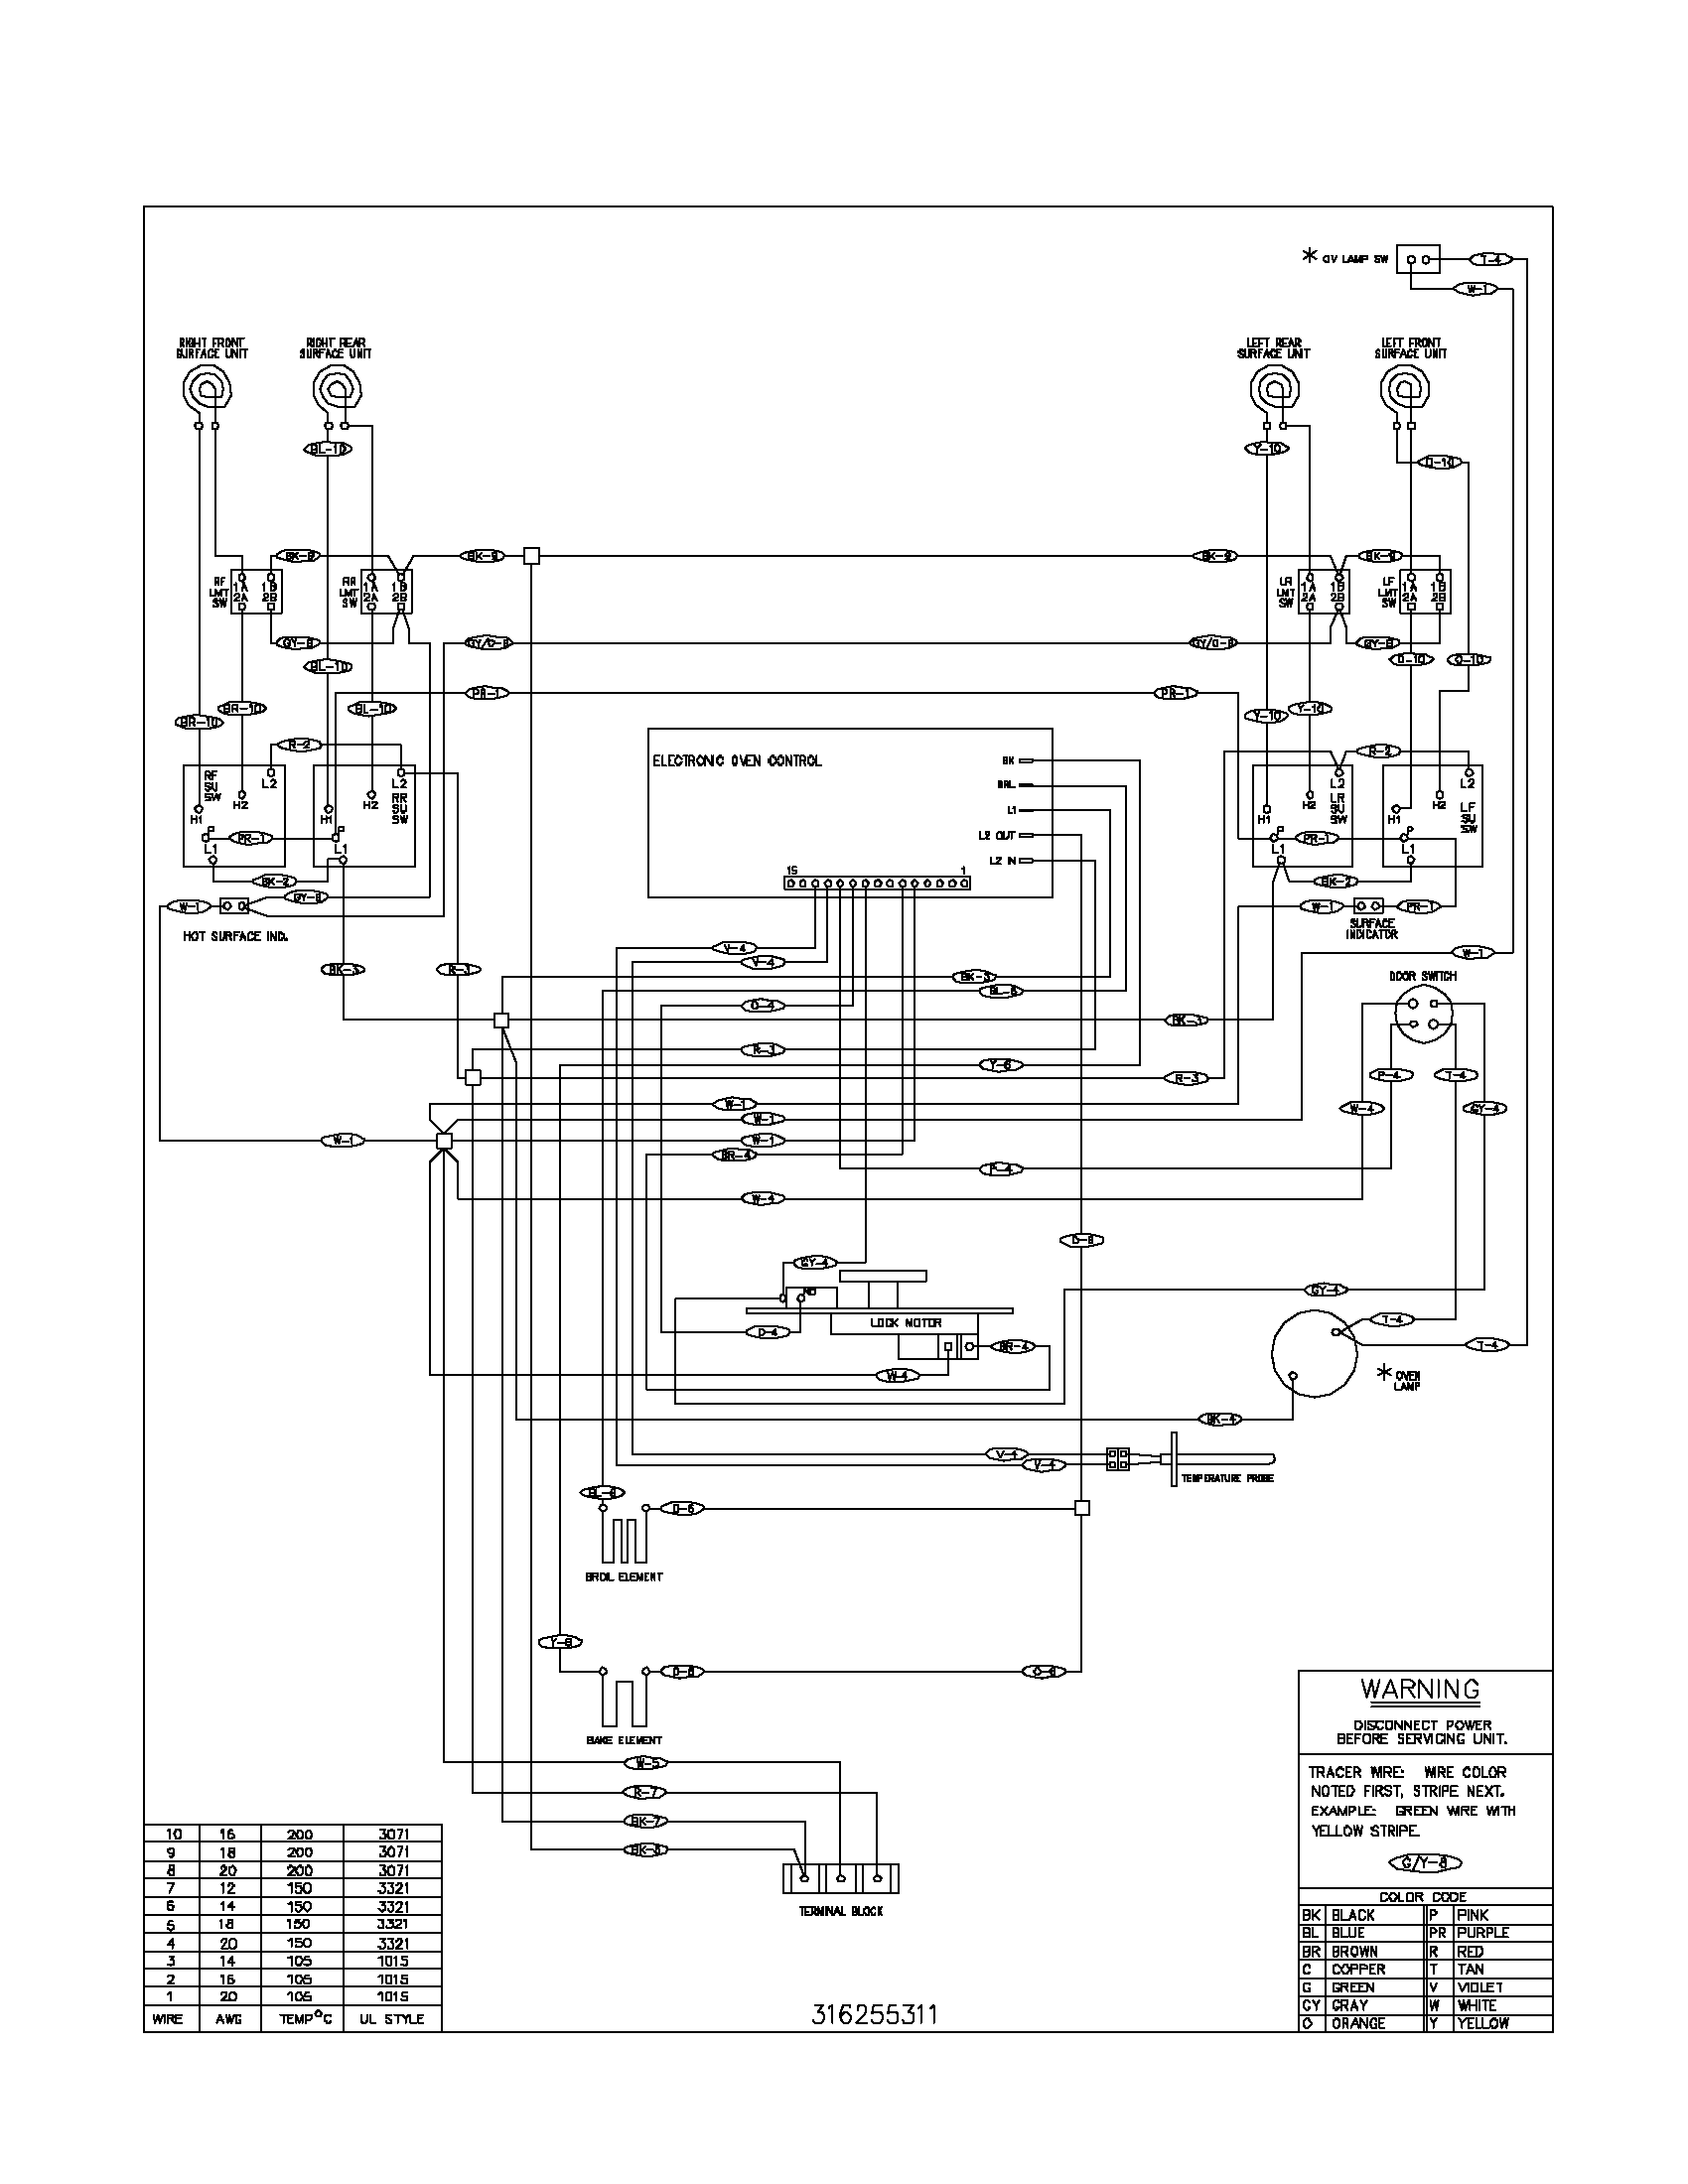 Odes atv Manual Odes Atv Wiring Diagram on